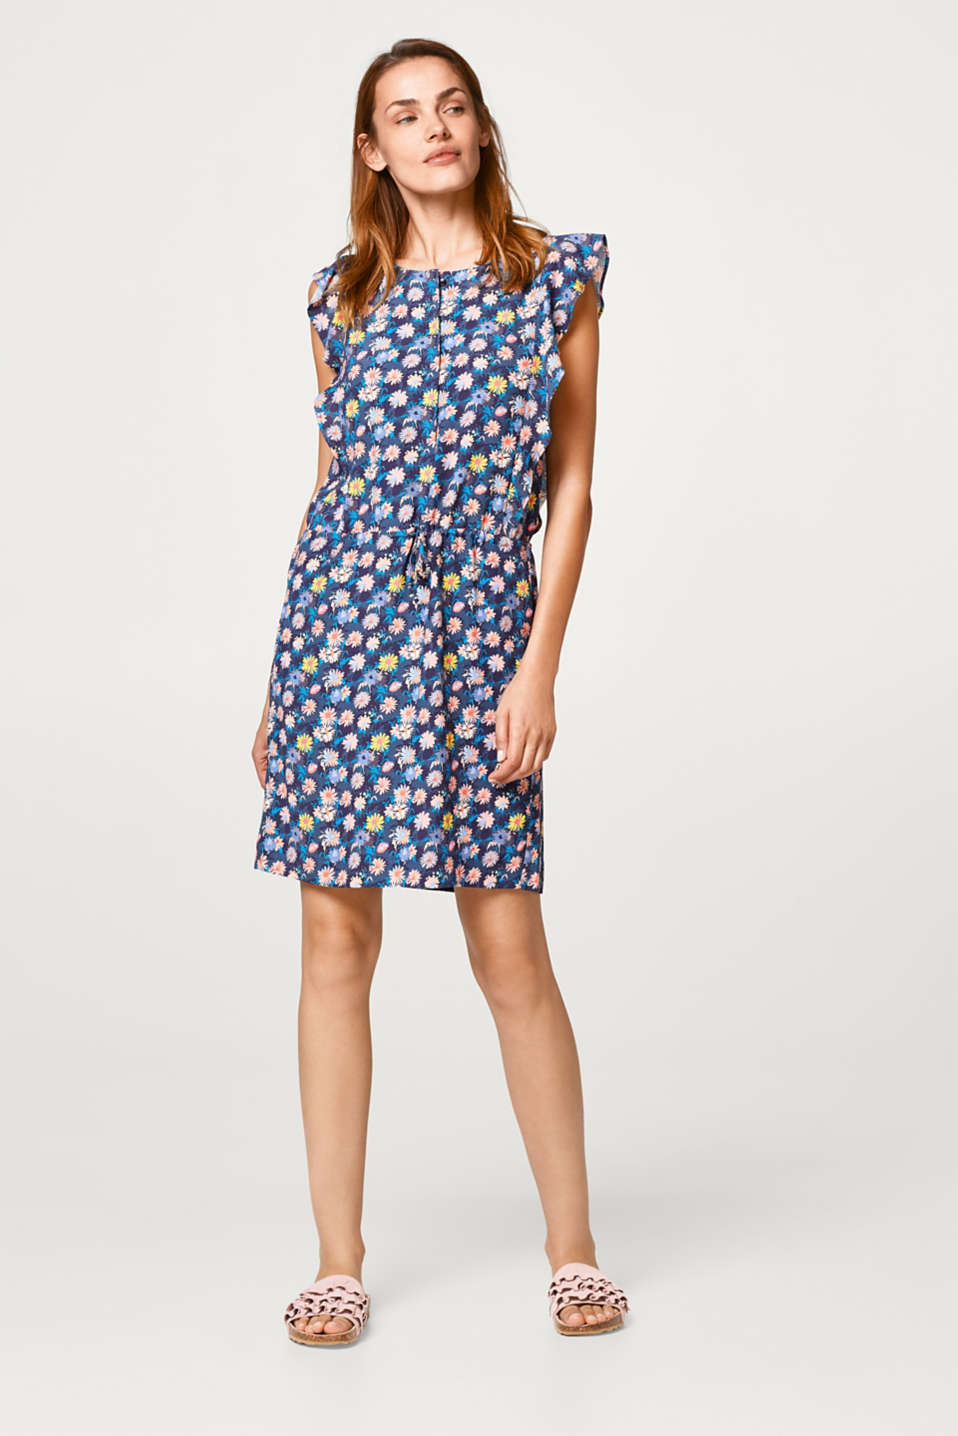 Lightweight, floral crêpe dress with flounces